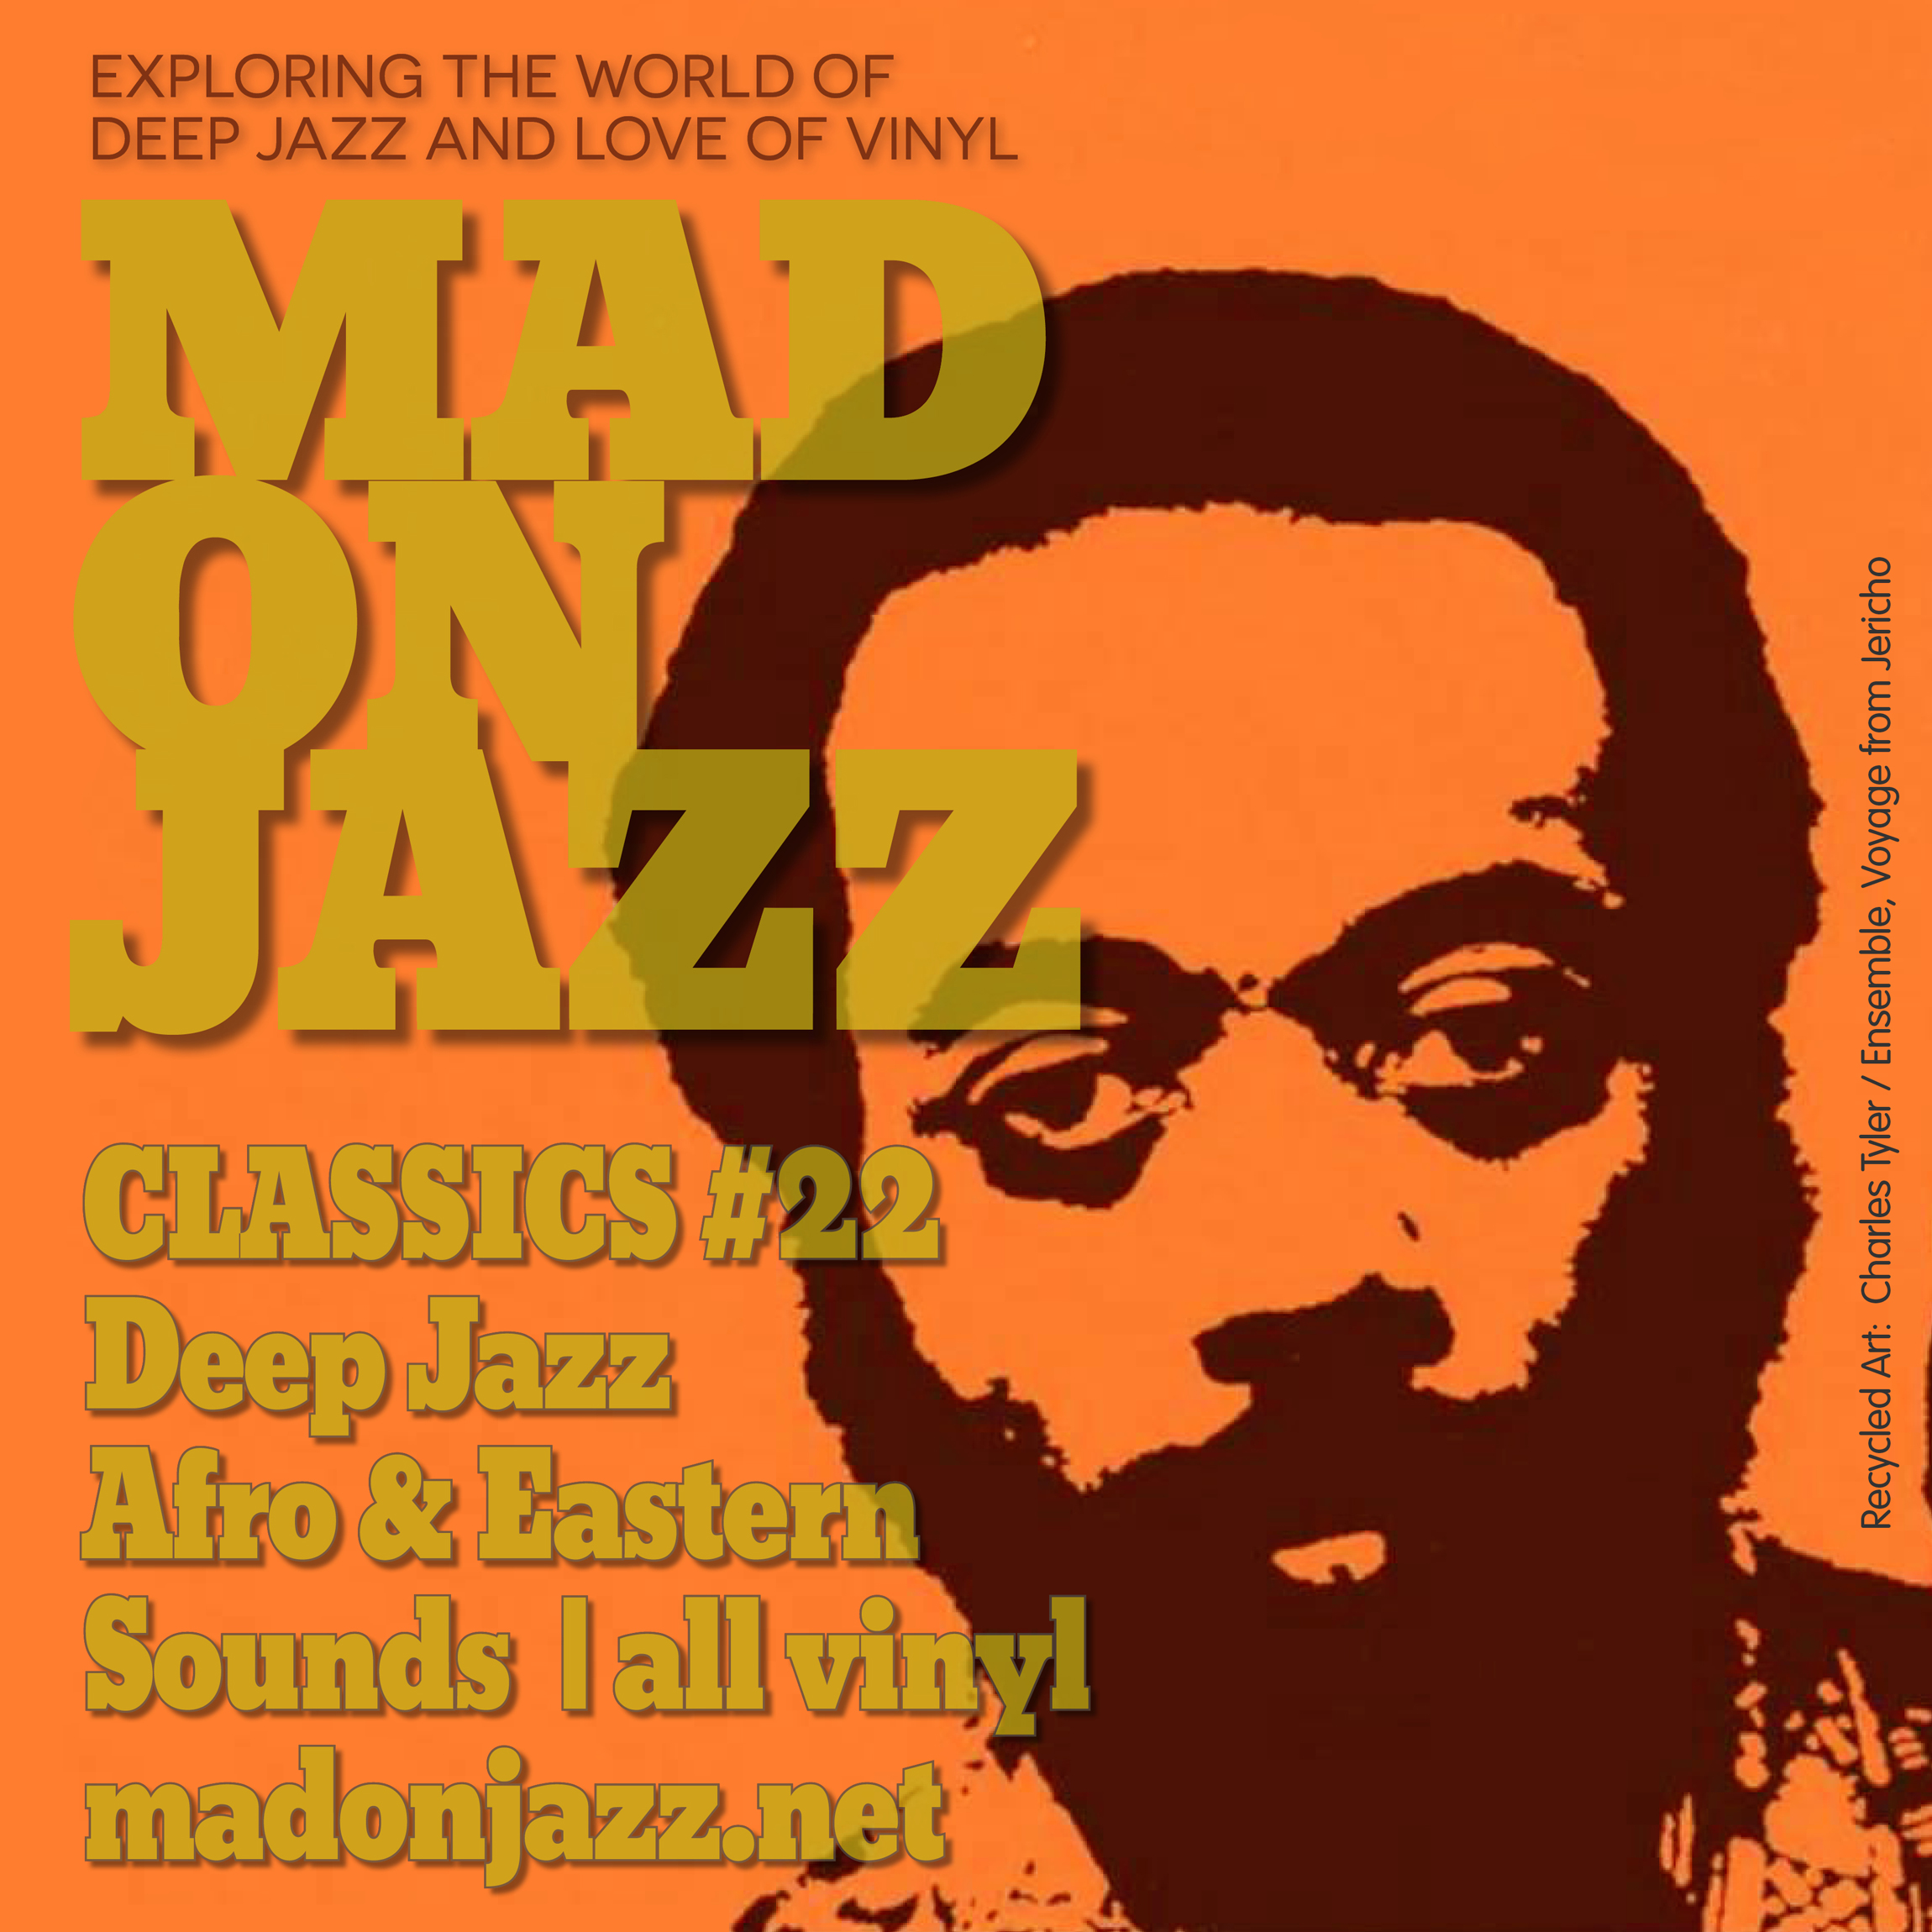 MADONJAZZ CLASSICS vol 22: Deep Jazz, Afro & Eastern Jazz Sounds All vinyl